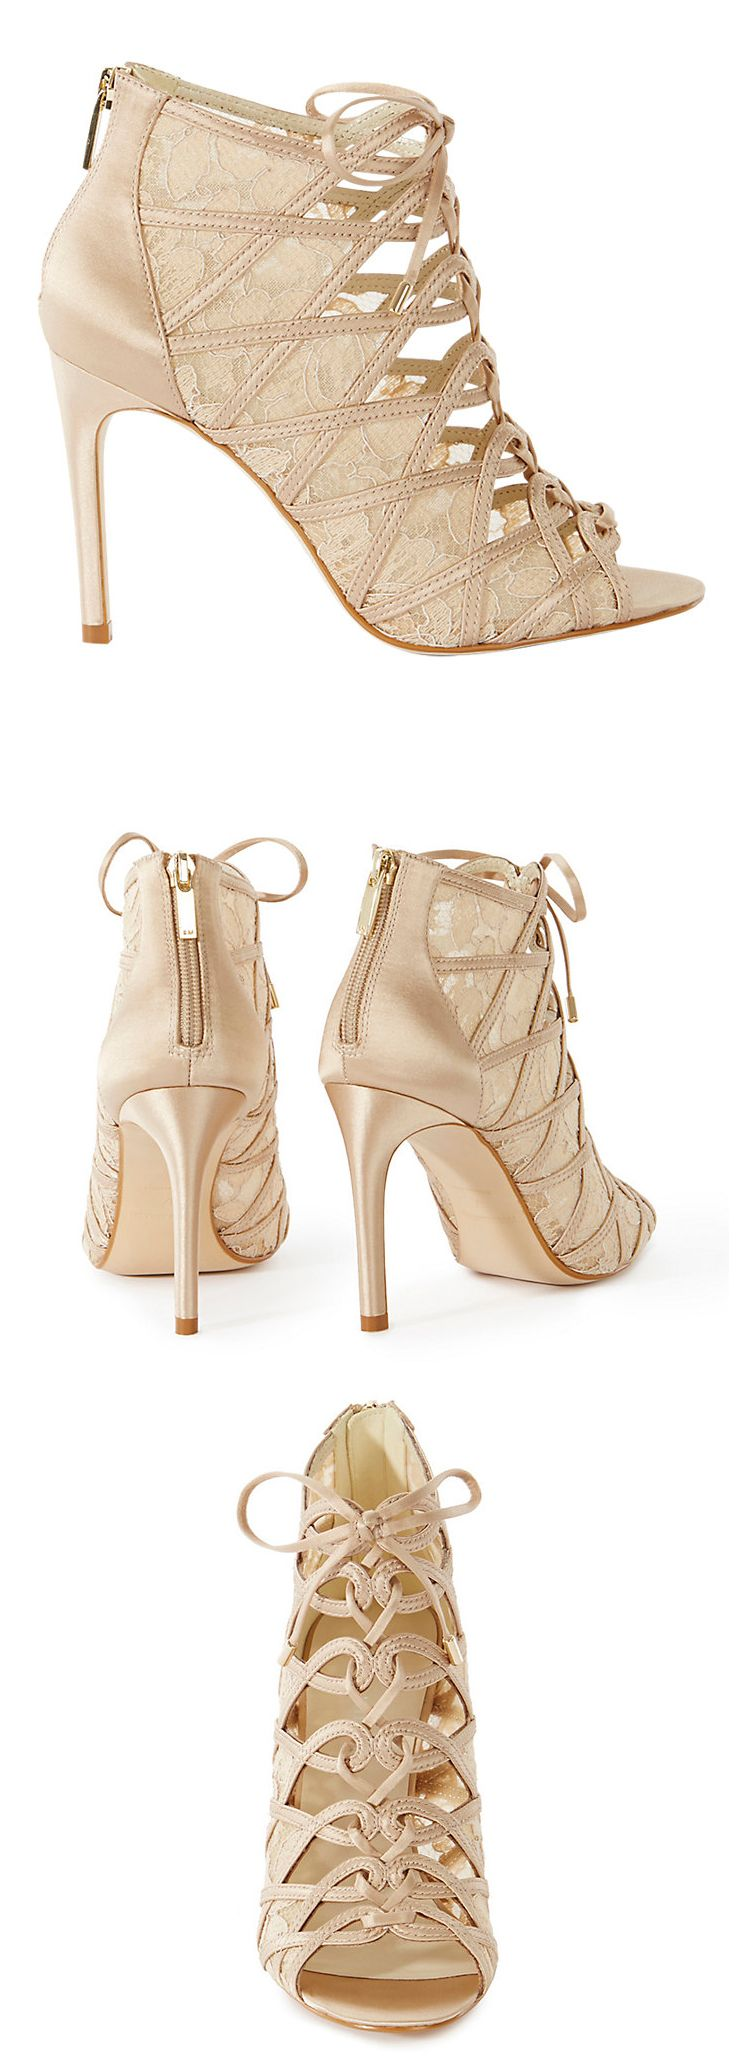 Karen Millen Satin and Lace Stiletto Heeled Shoe Boots in Champagne or Black. Great for Autumn / Spring Racing Race Day Outfits, or Eveningwear. Satin and Lace Shoes / Boots. Outfit Inspiration, Outfit Ideas. Killer Heels. #karenmillen #satin #lace #fashion #fashioinista #affiliatelink #shoesdaytuesday #shoeaddict #stilettos